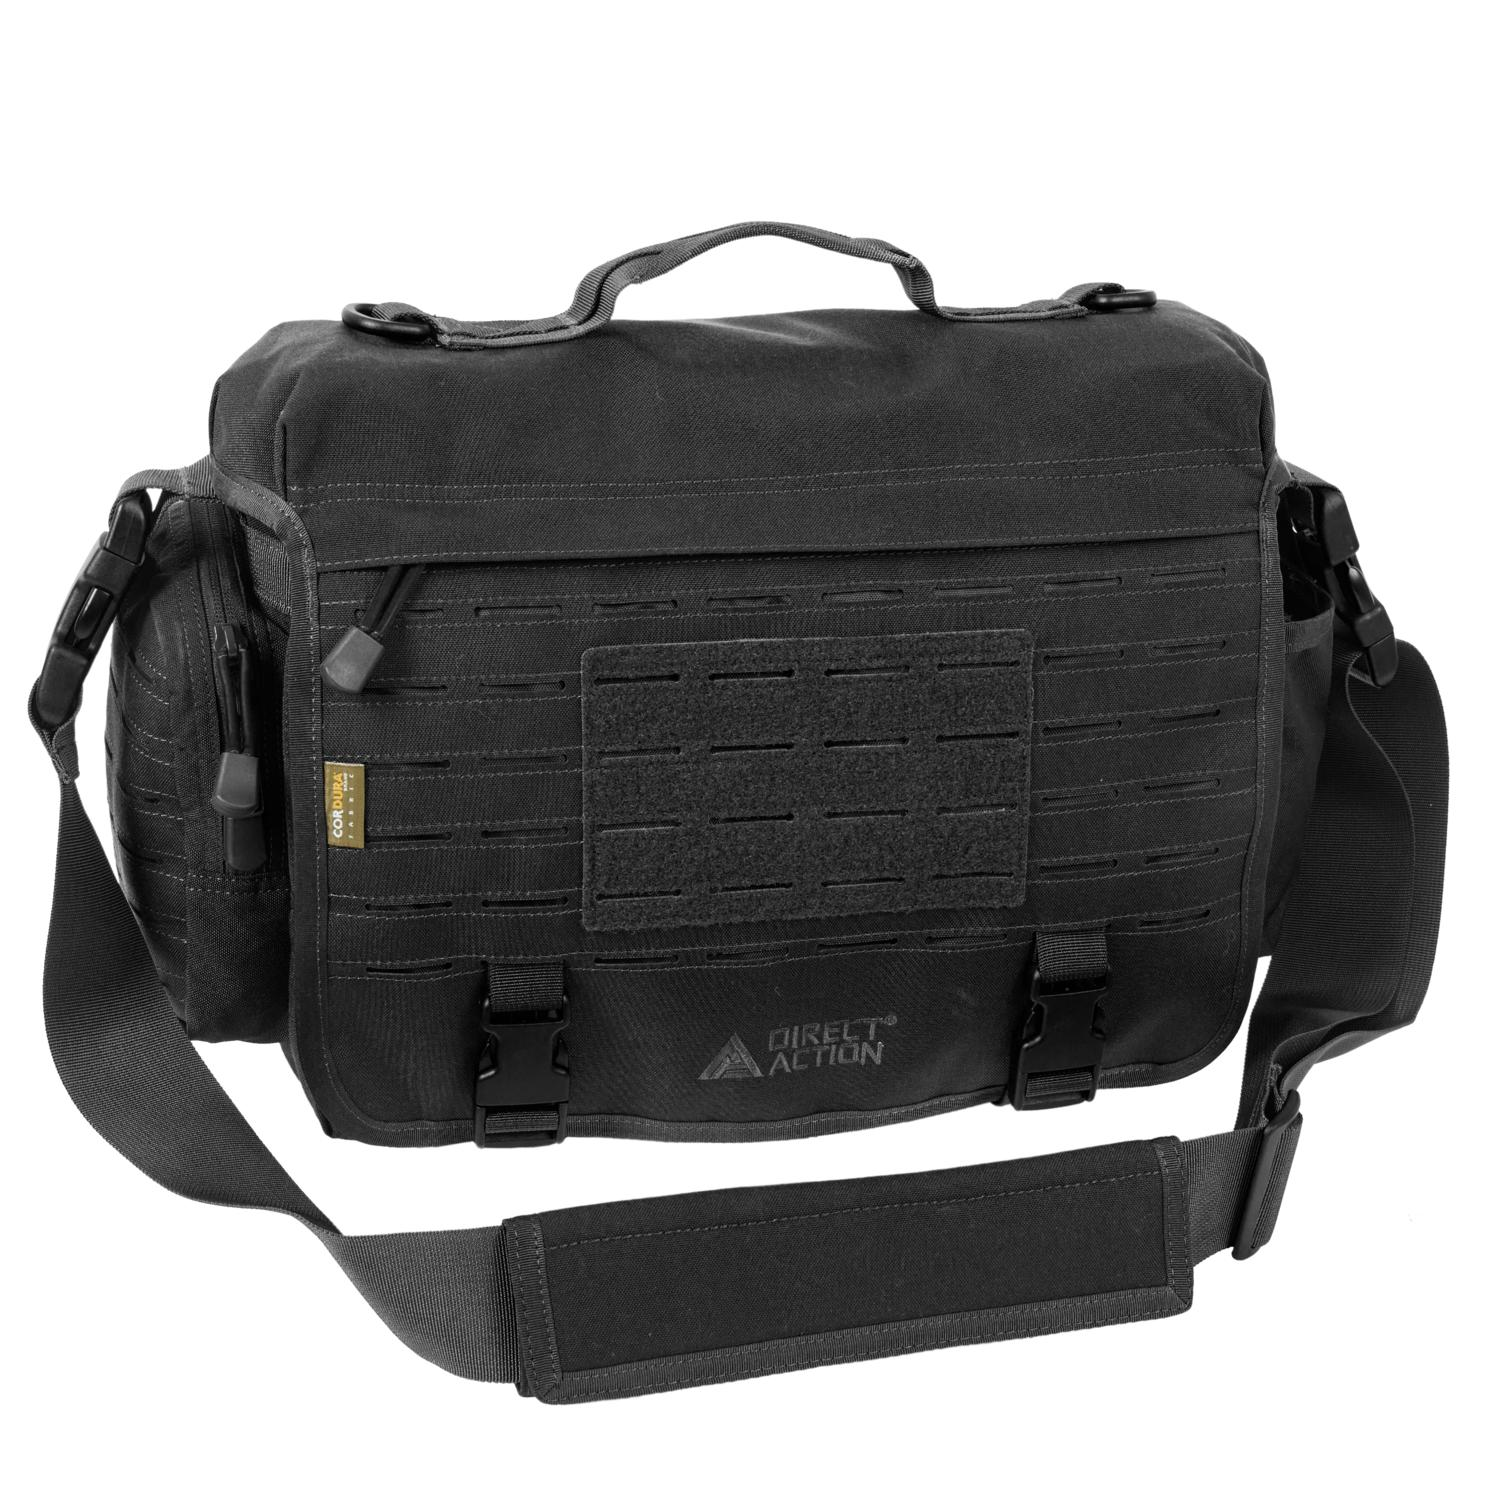 Túi MESSENGER BAG MK II -  Black